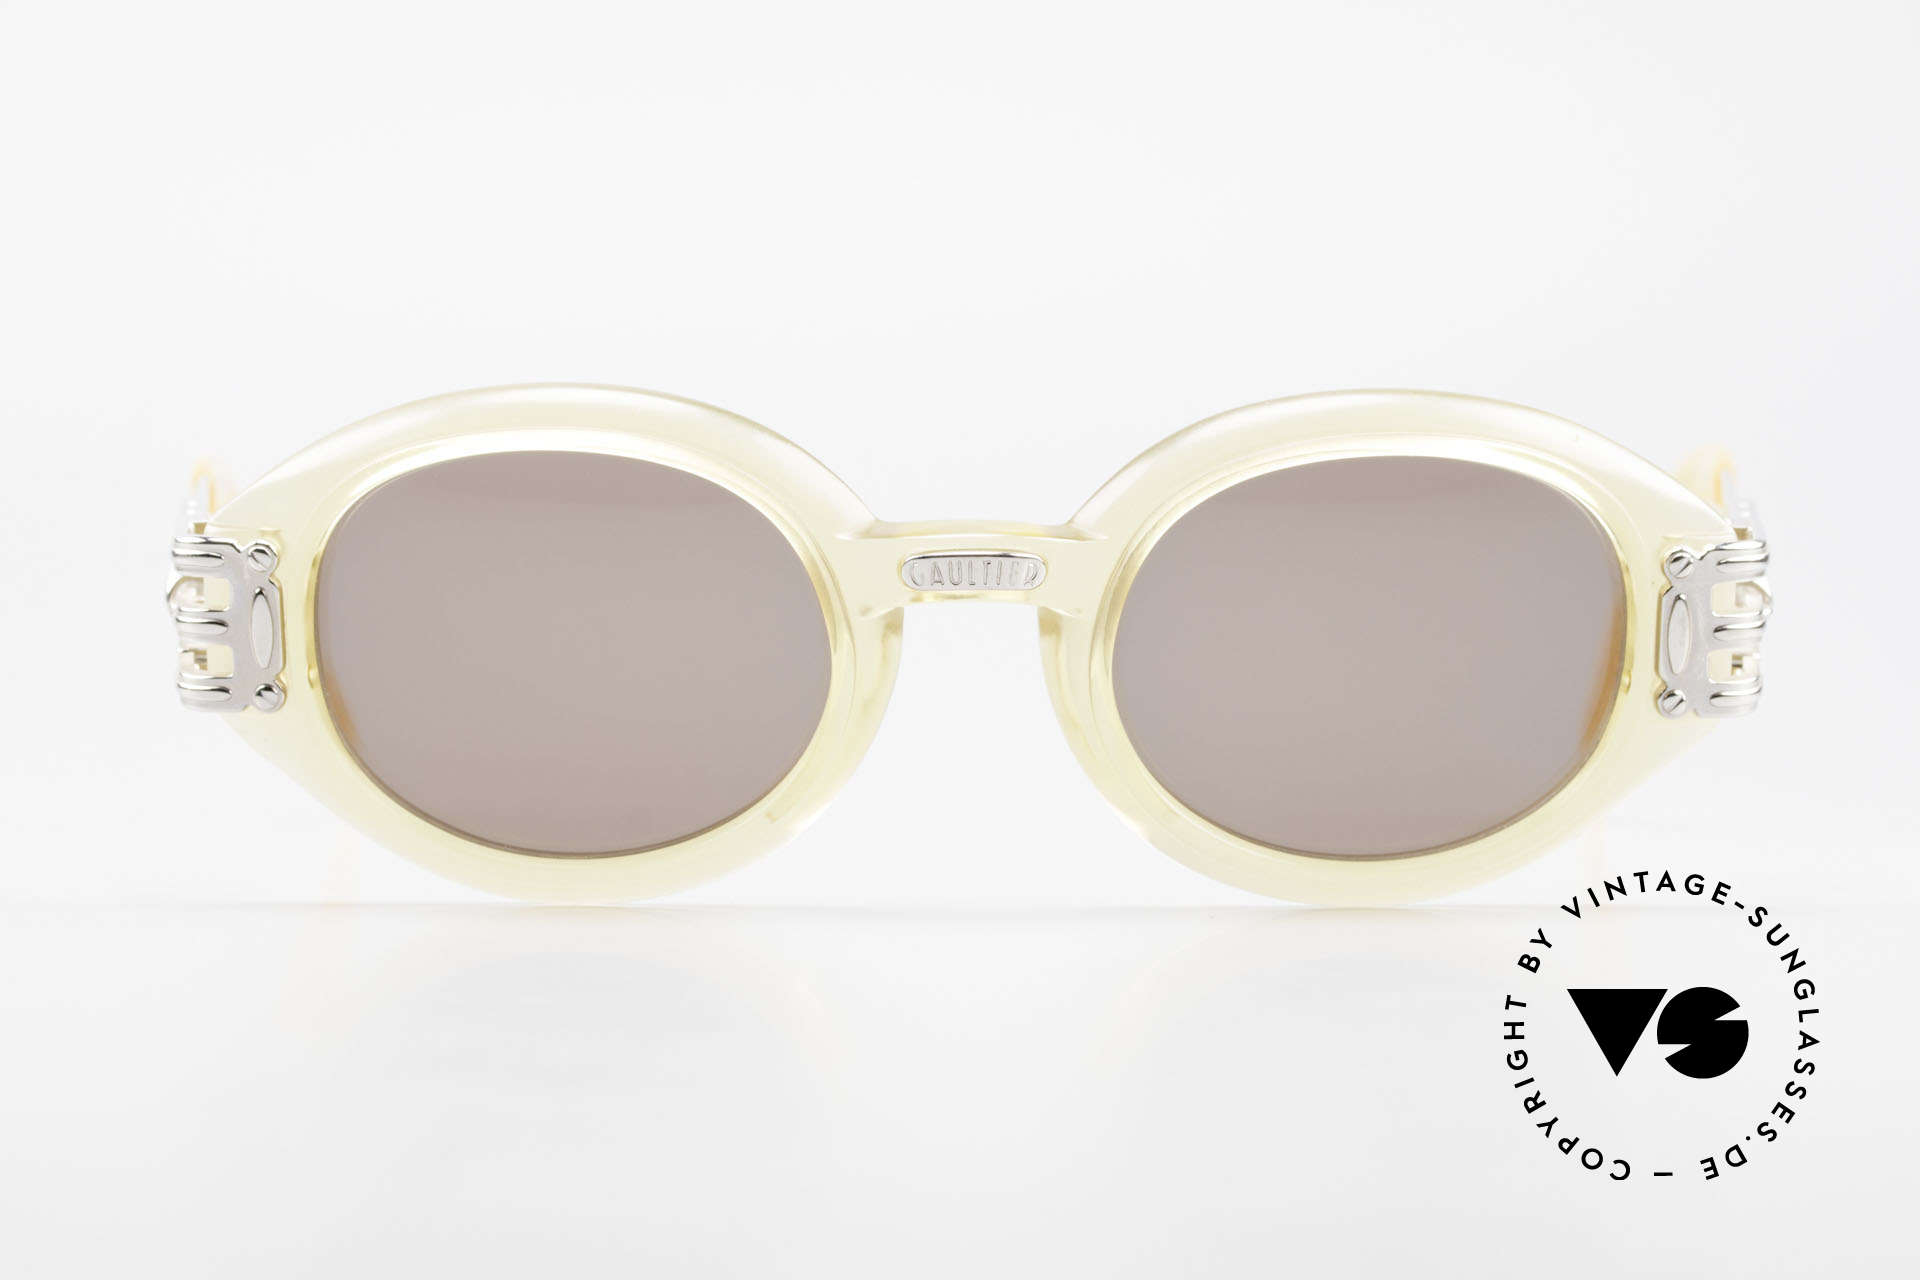 Jean Paul Gaultier 56-5203 90's Steampunk Shades Oval, enormous massive / heavy frame in high-end quality, Made for Men and Women